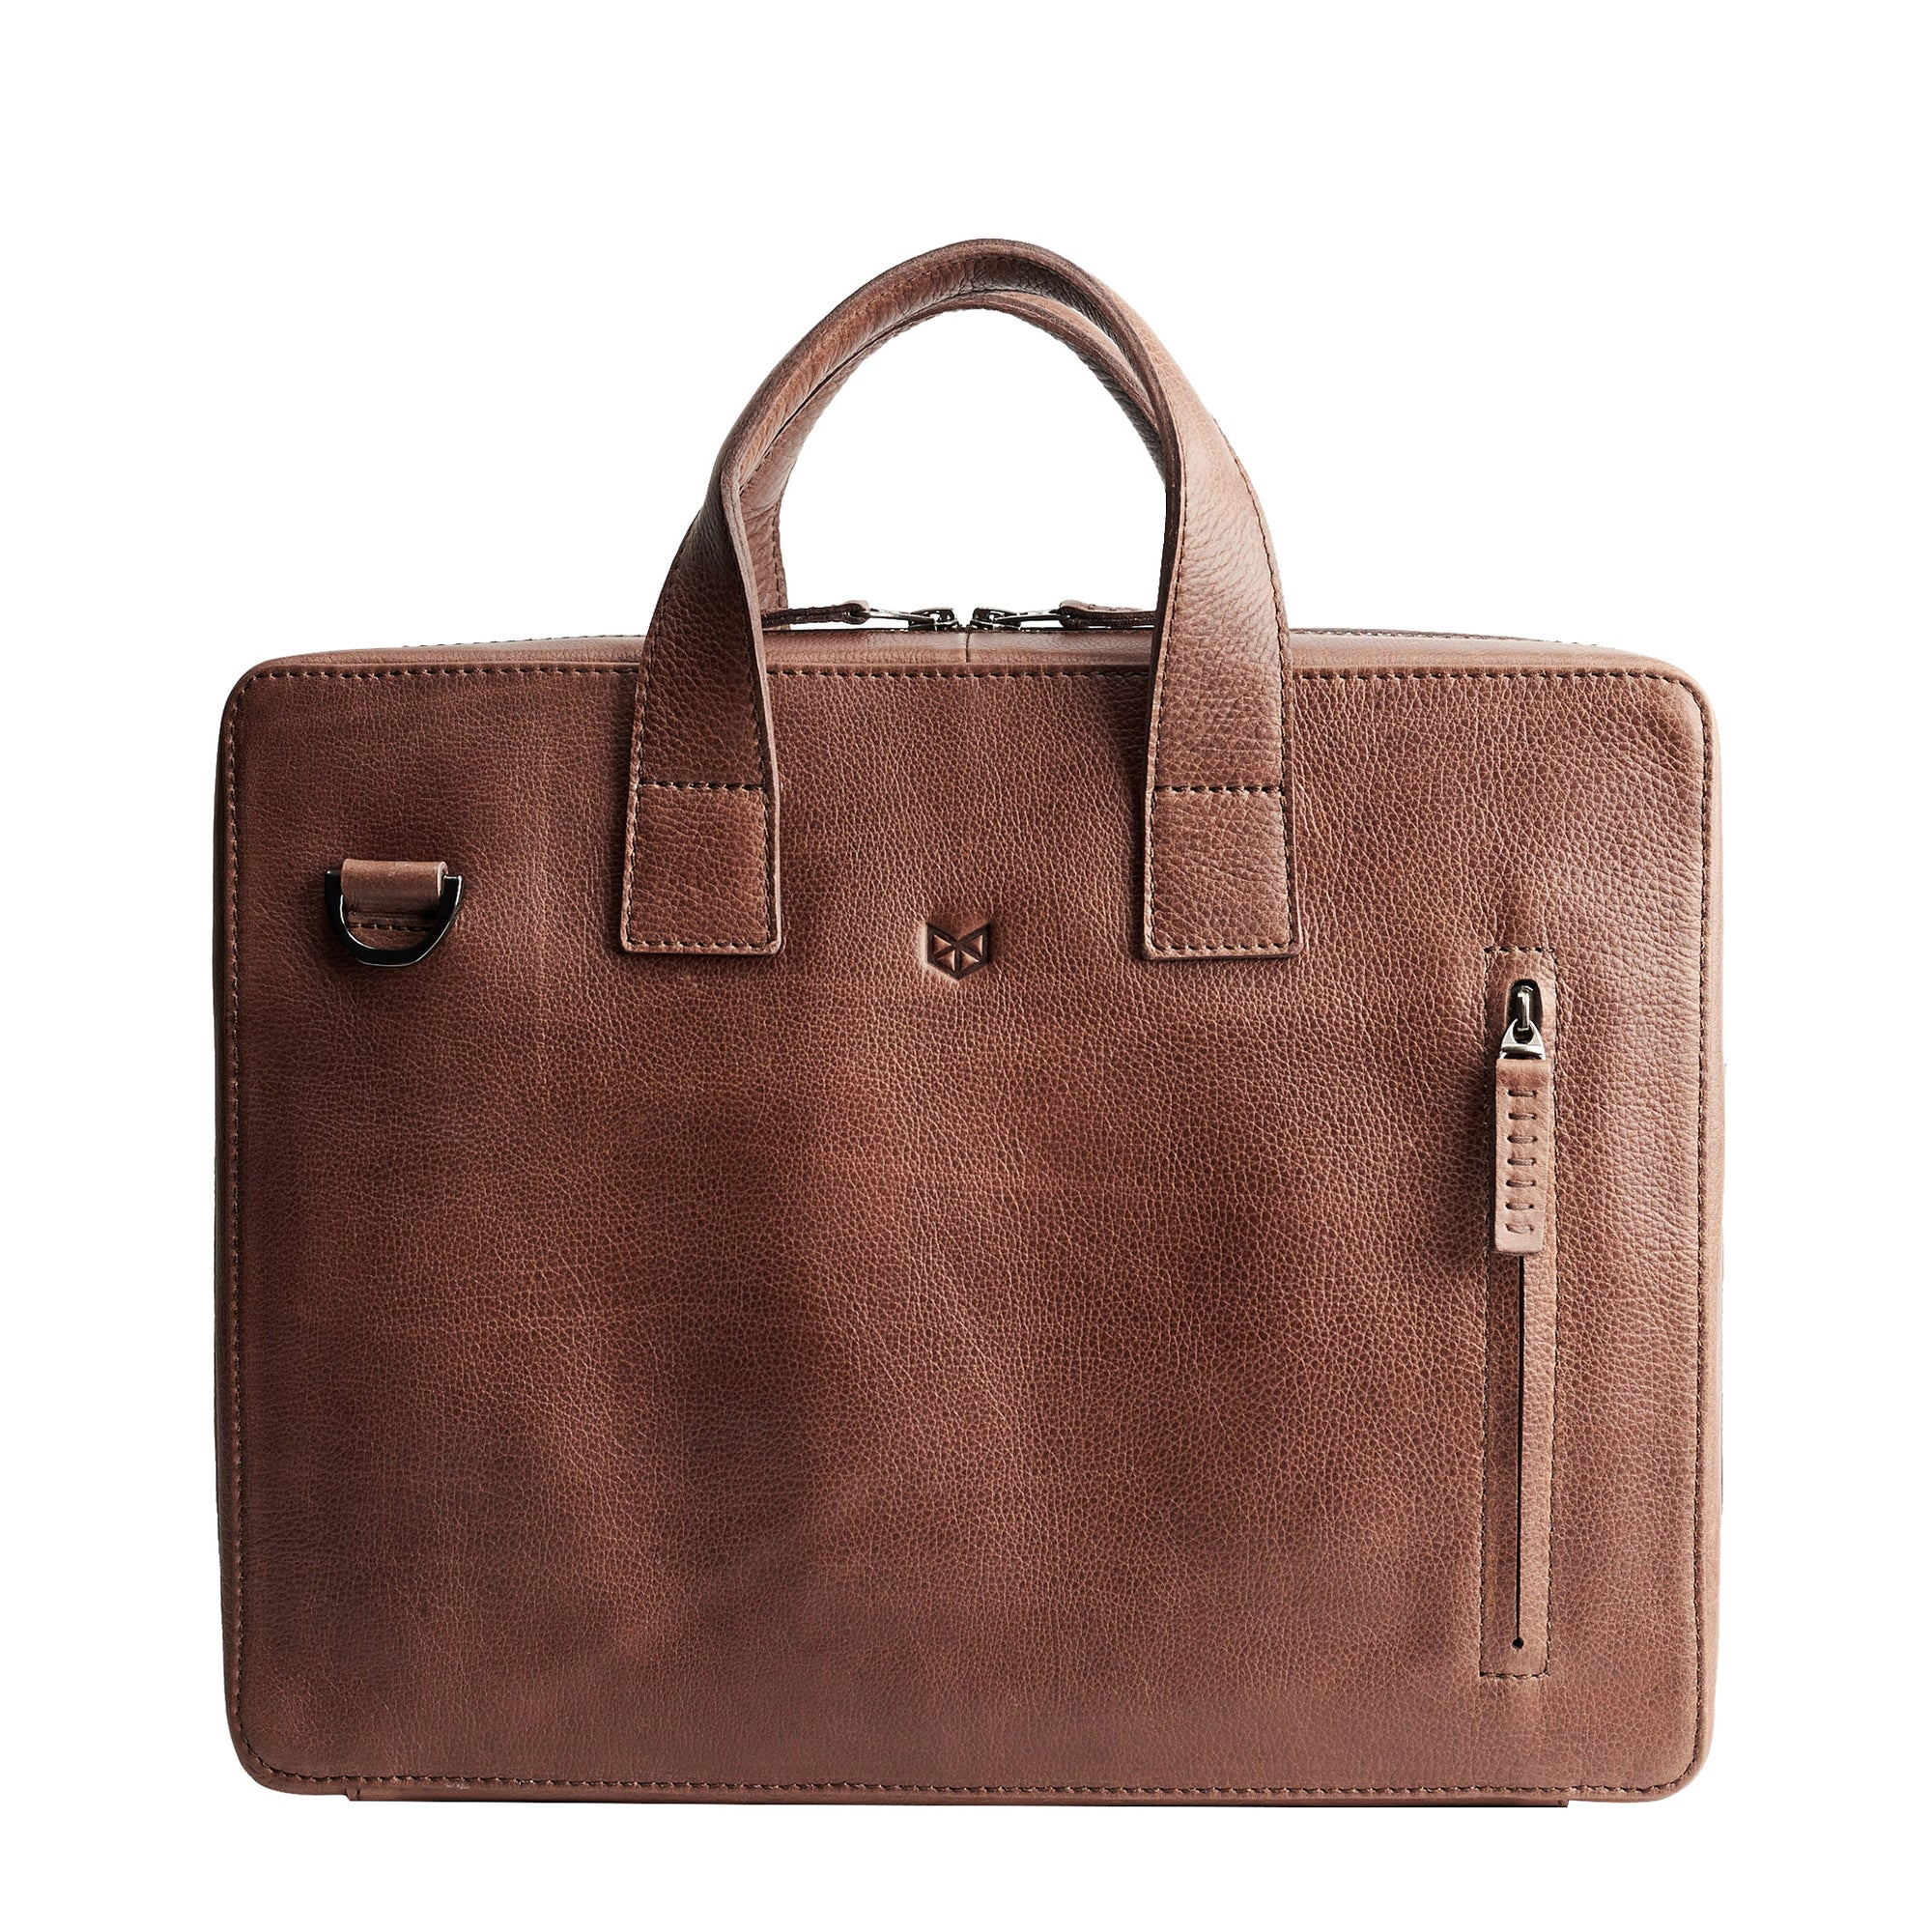 Brown leather workbag for men. Unique office style bag